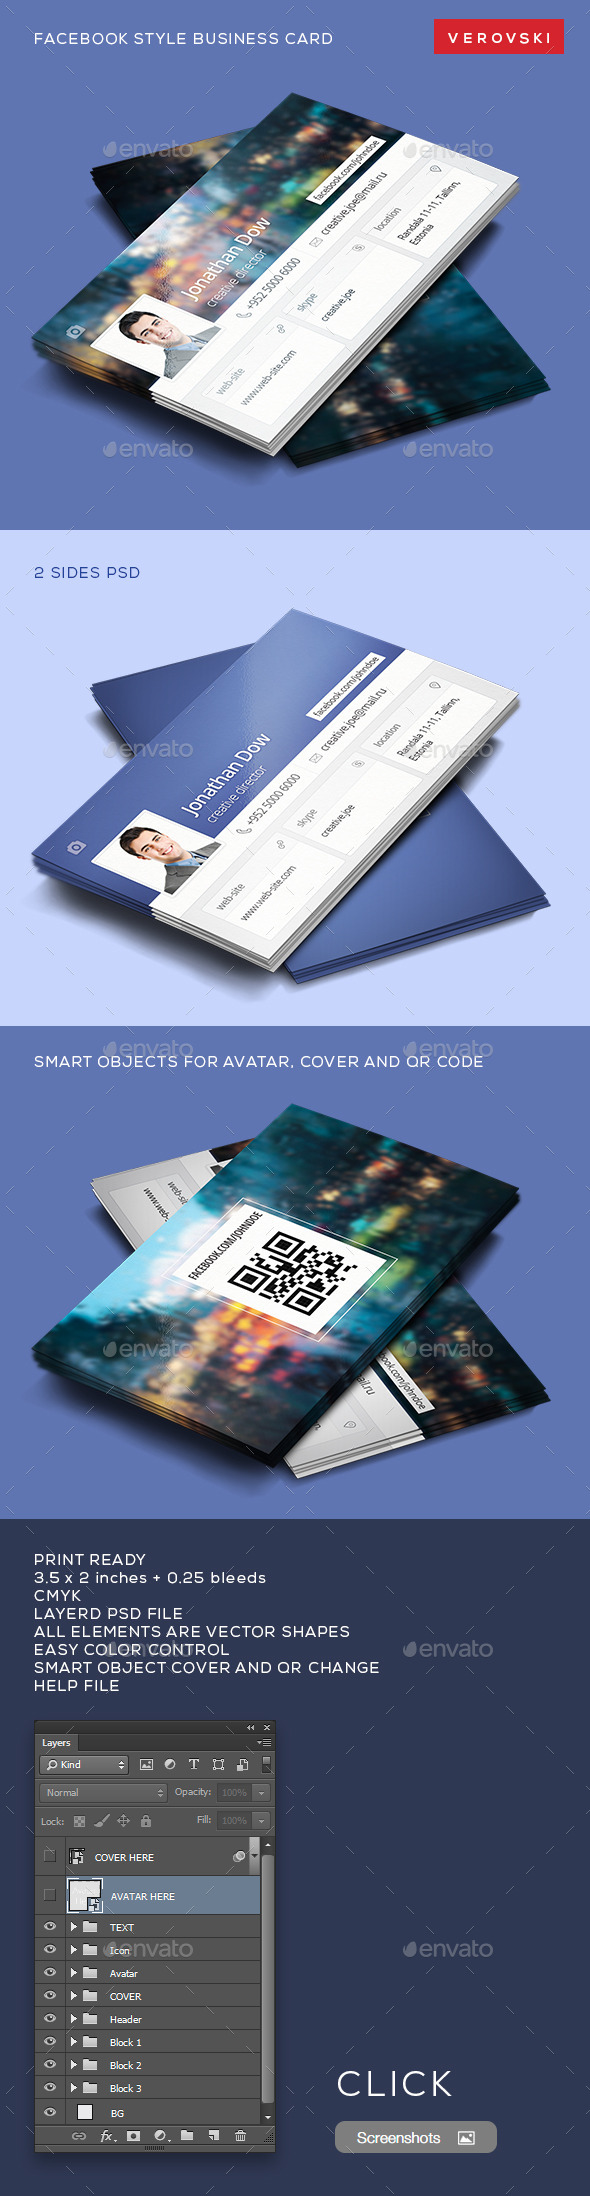 Facebook business card graphics designs templates flashek Gallery